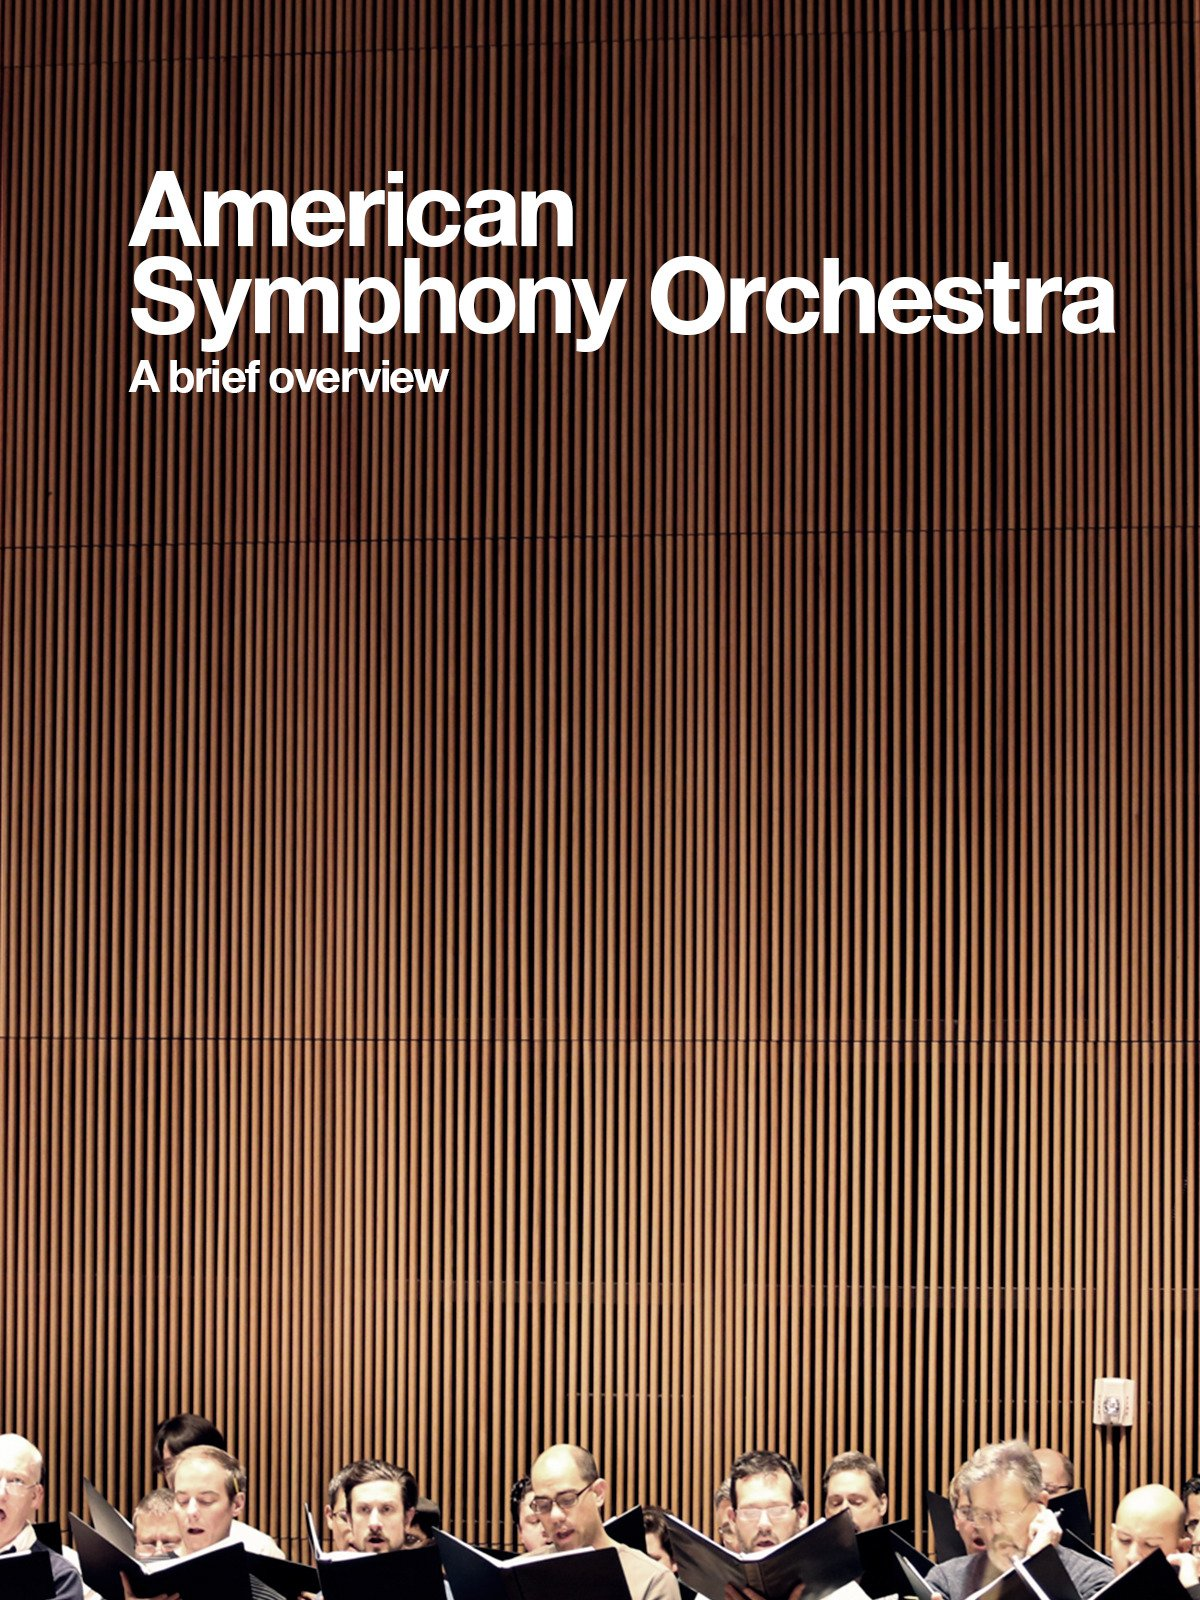 American Symphony Orchestra: A Brief Overview on Amazon Prime Instant Video UK